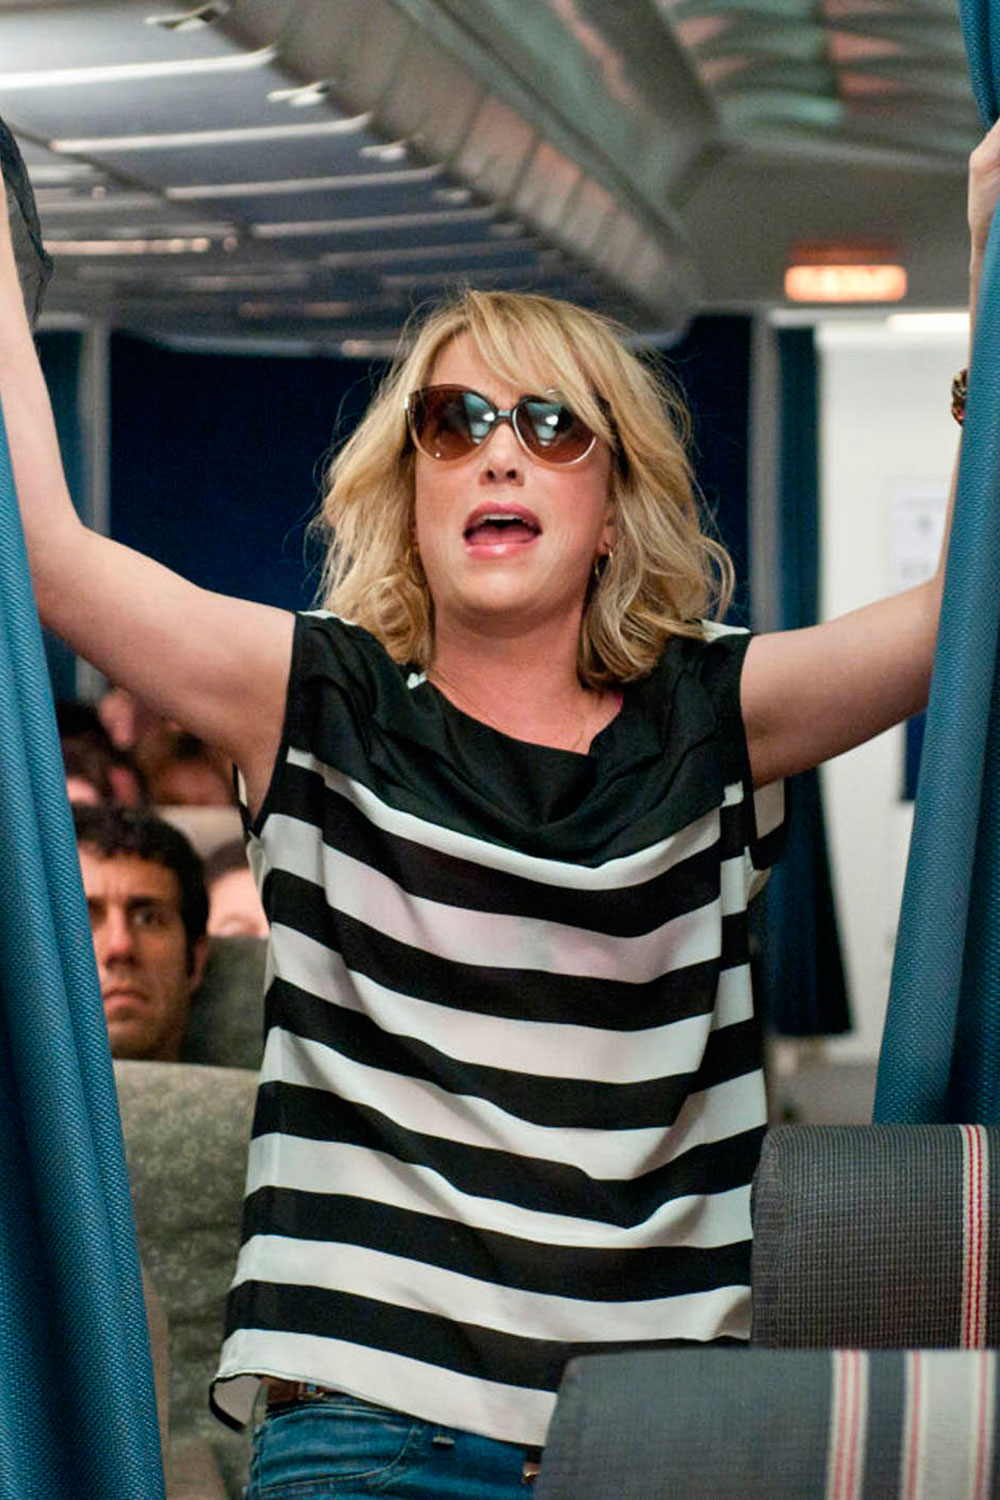 Bridesmaids Movie Follow Up Confirmed By Kristen Wiig And